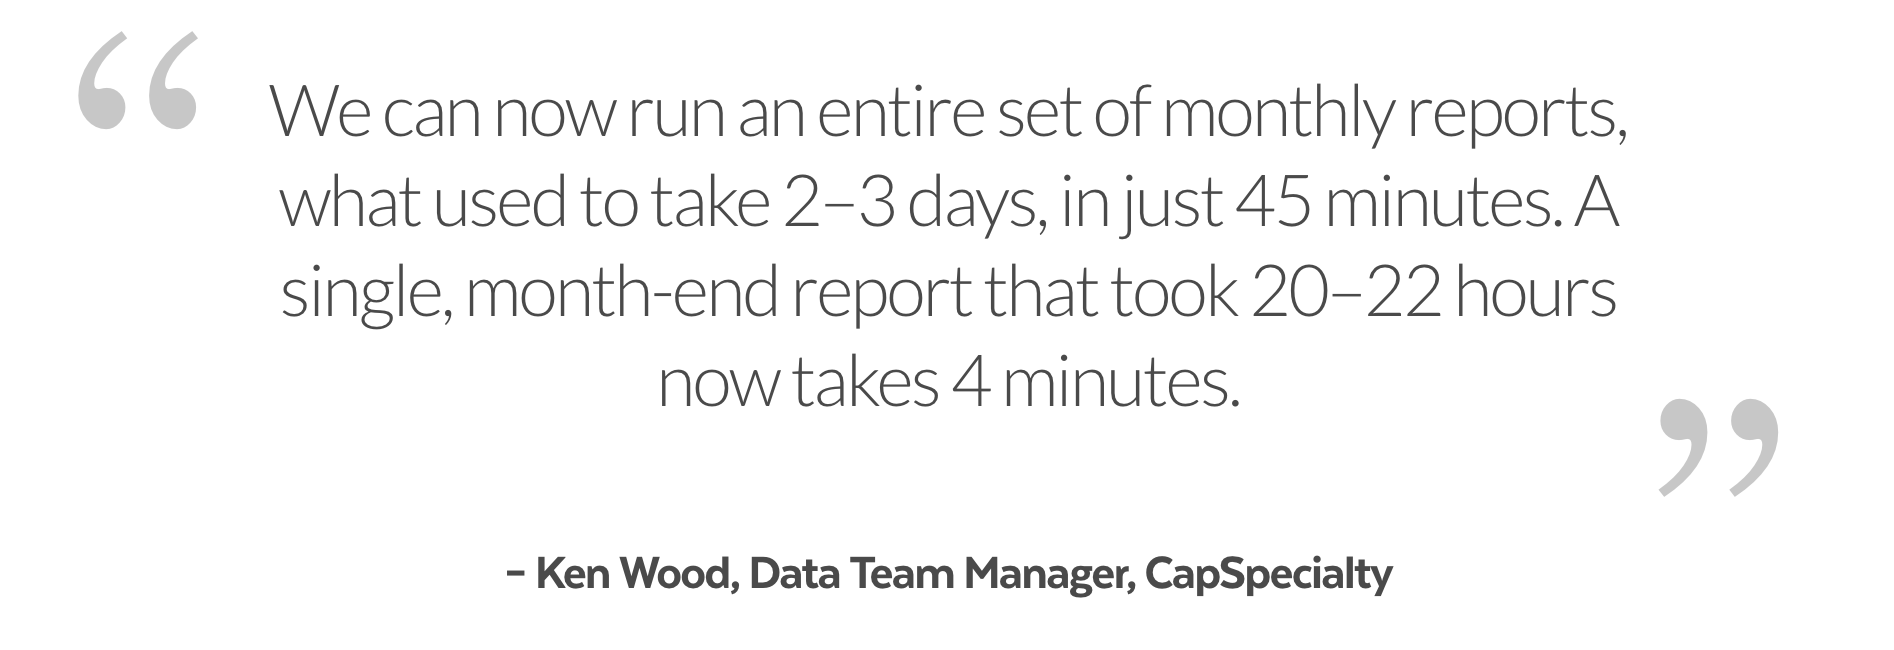 Snowflake testimonial from Ken Wood, Data Team Manager at CapSpeciality